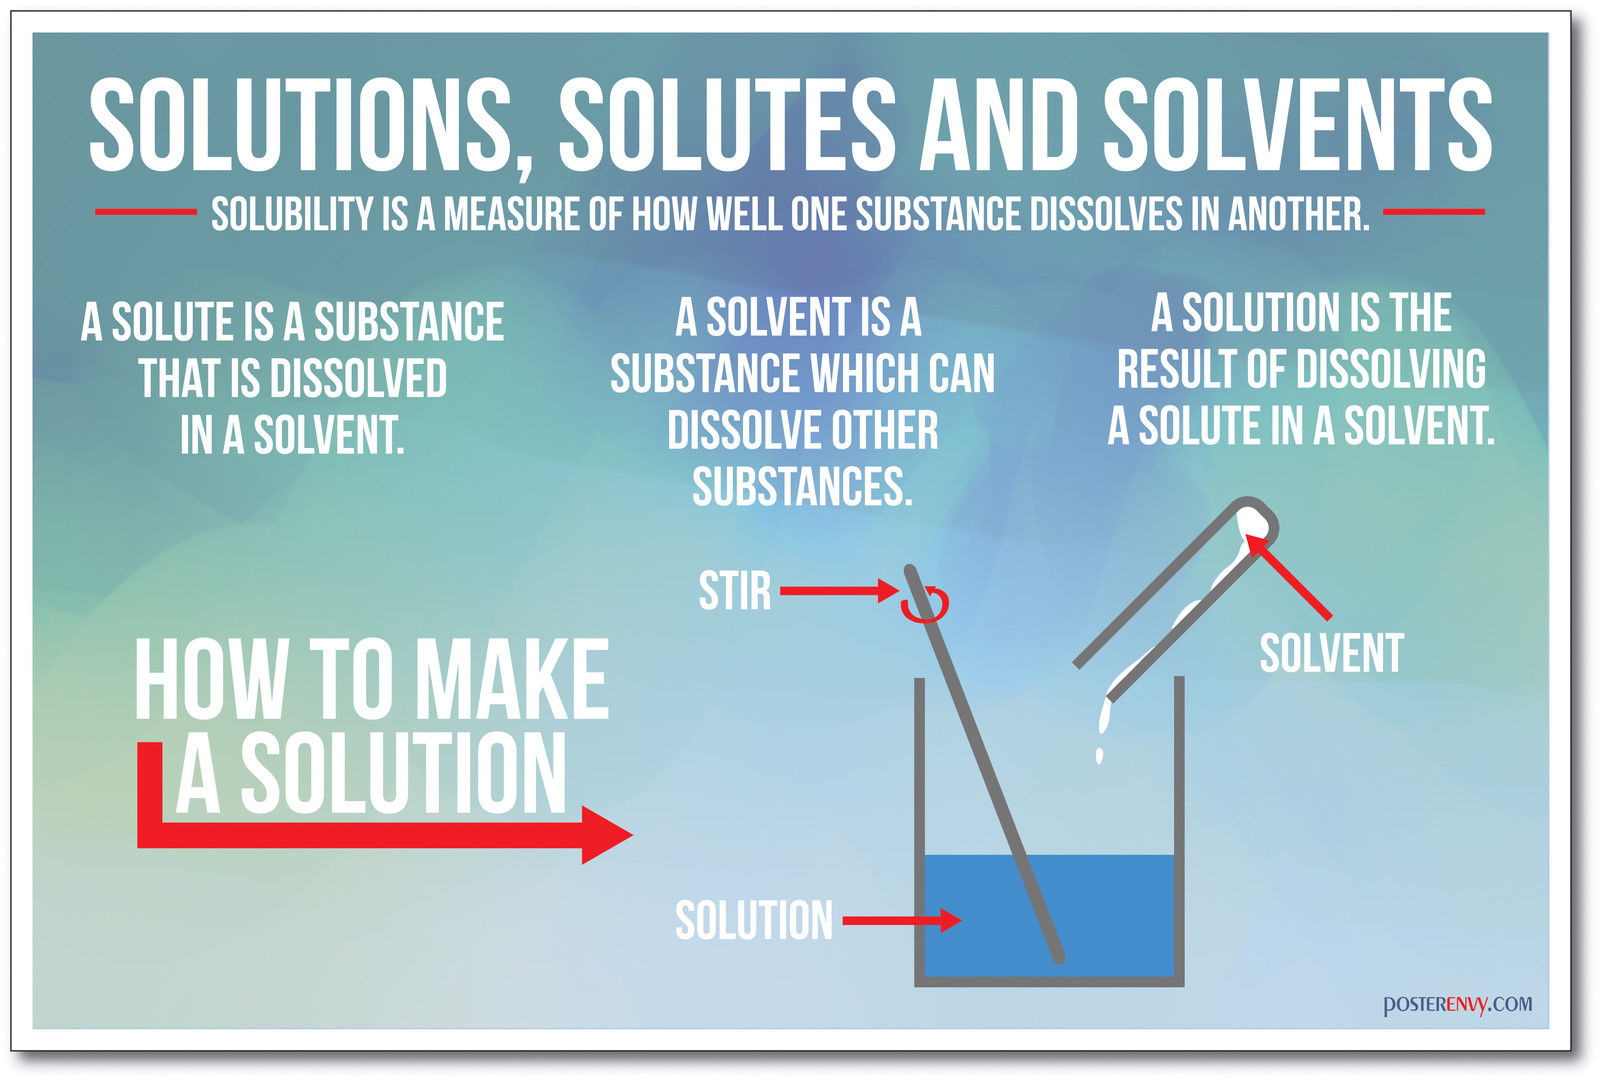 173742 Solutions Solutes and Solvents Science Chemistry WALL PRINT POSTER CA